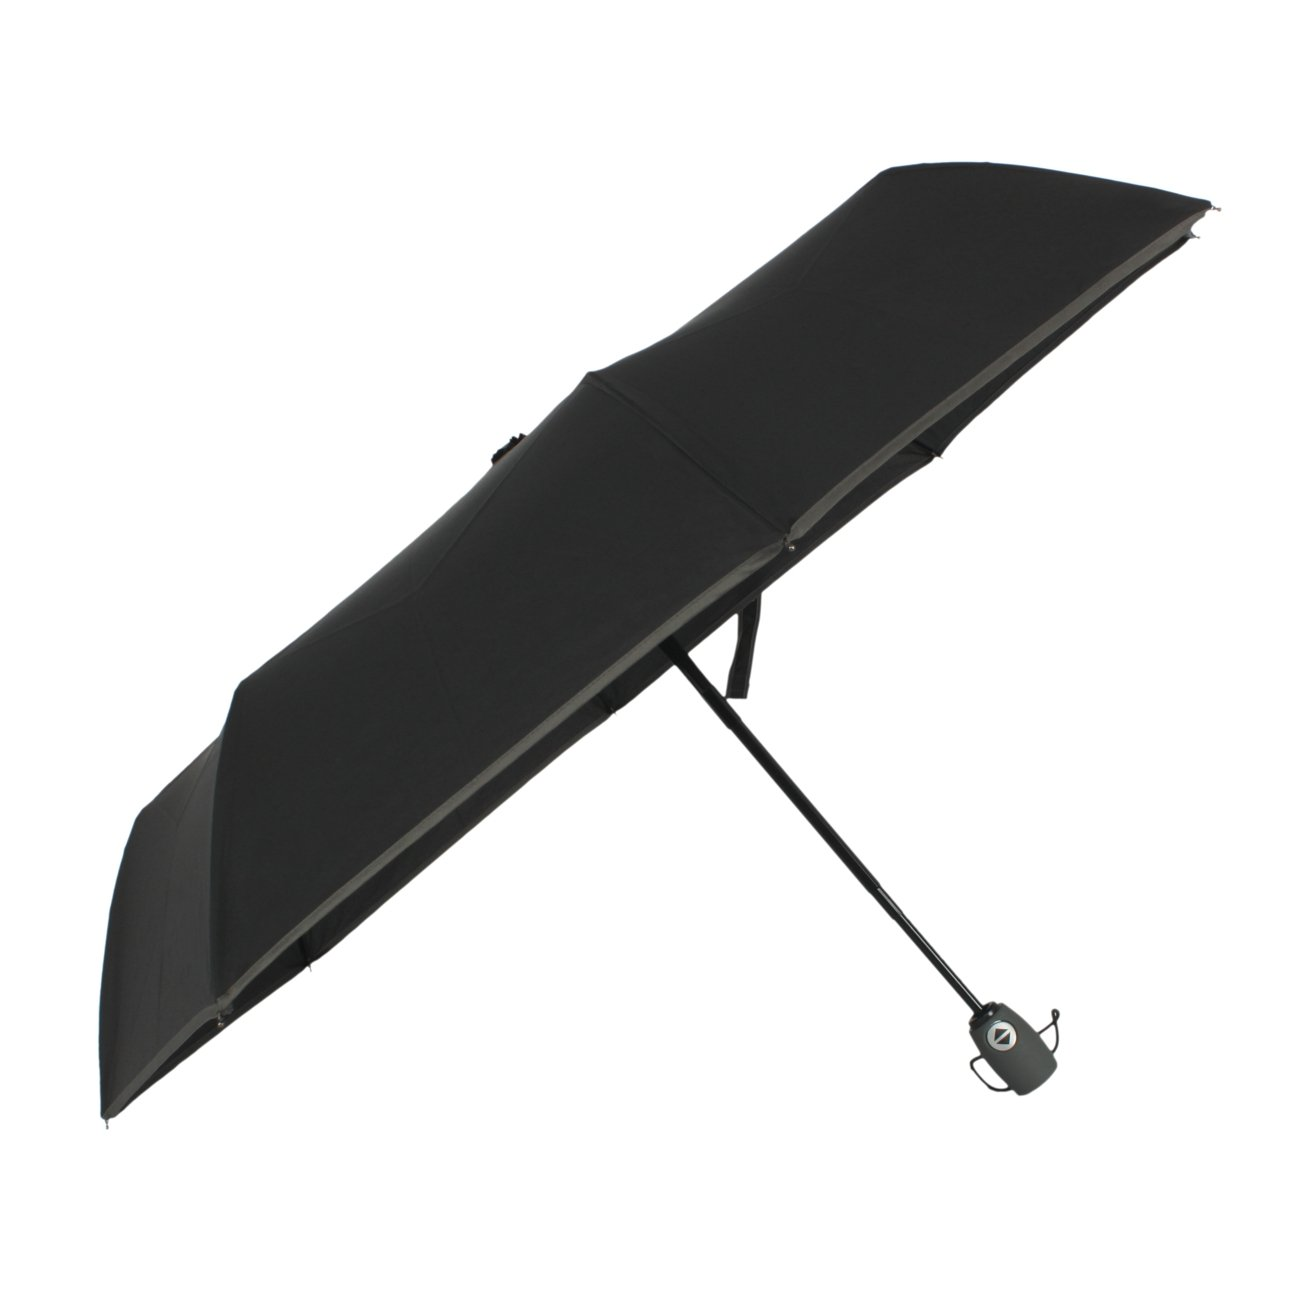 New Susino Travel Umbrella Windproof Automatic Open Close Compact Folding Umbrellas with Multiple colors